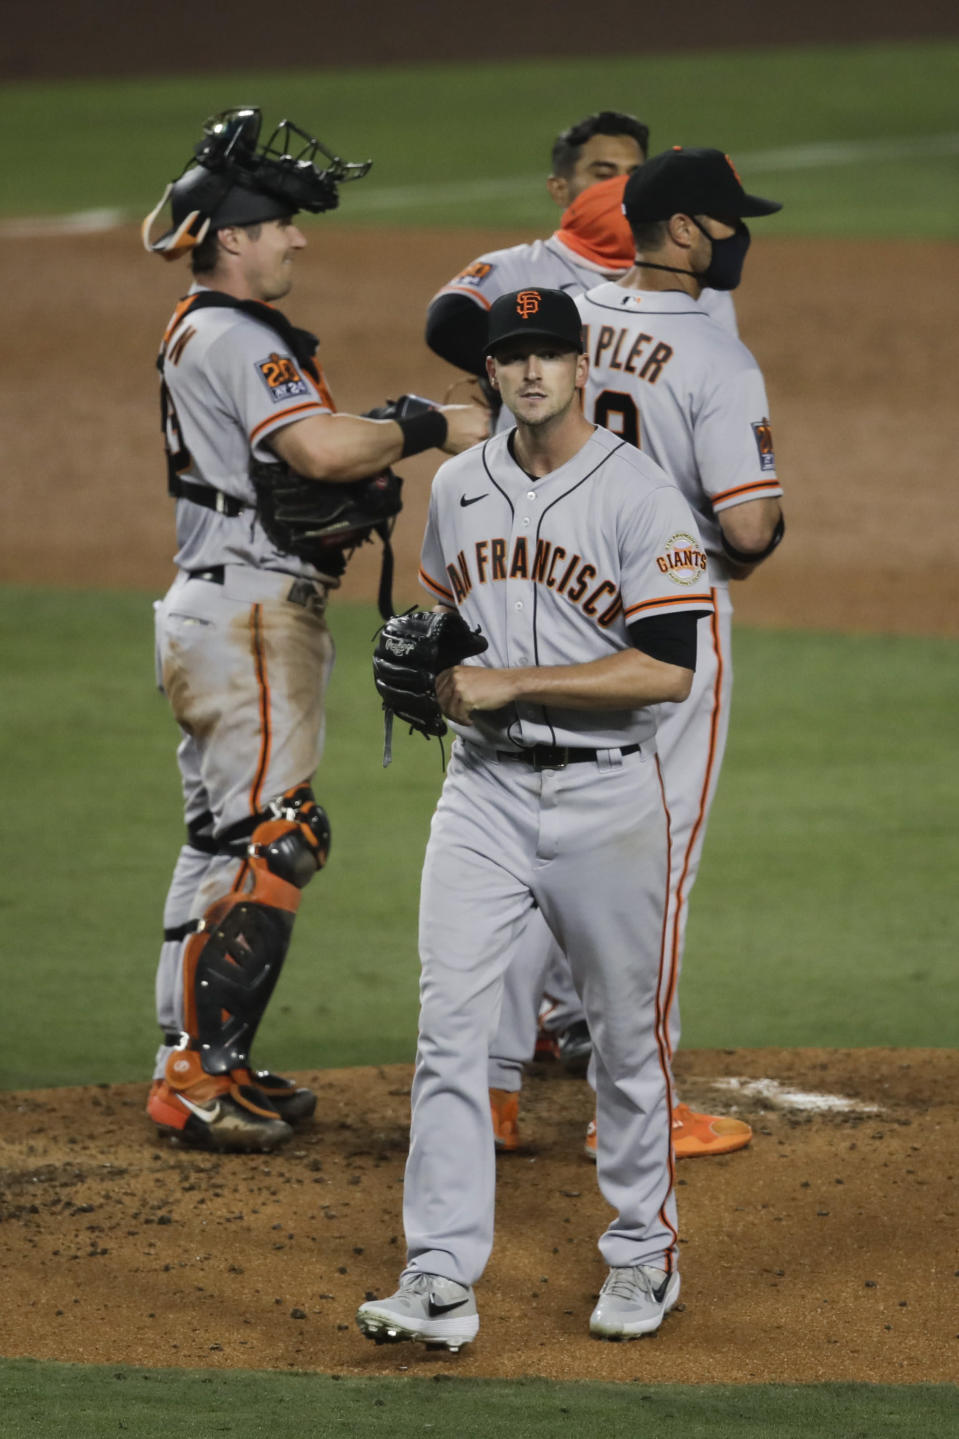 San Francisco Giants starting pitcher Drew Smyly, center, leaves the mound after he was removed by manager Gabe Kapler during the fourth inning of the team's baseball game against the Los Angeles Dodgers, Sunday, July 26, 2020, in Los Angeles. (AP Photo/Jae C. Hong)